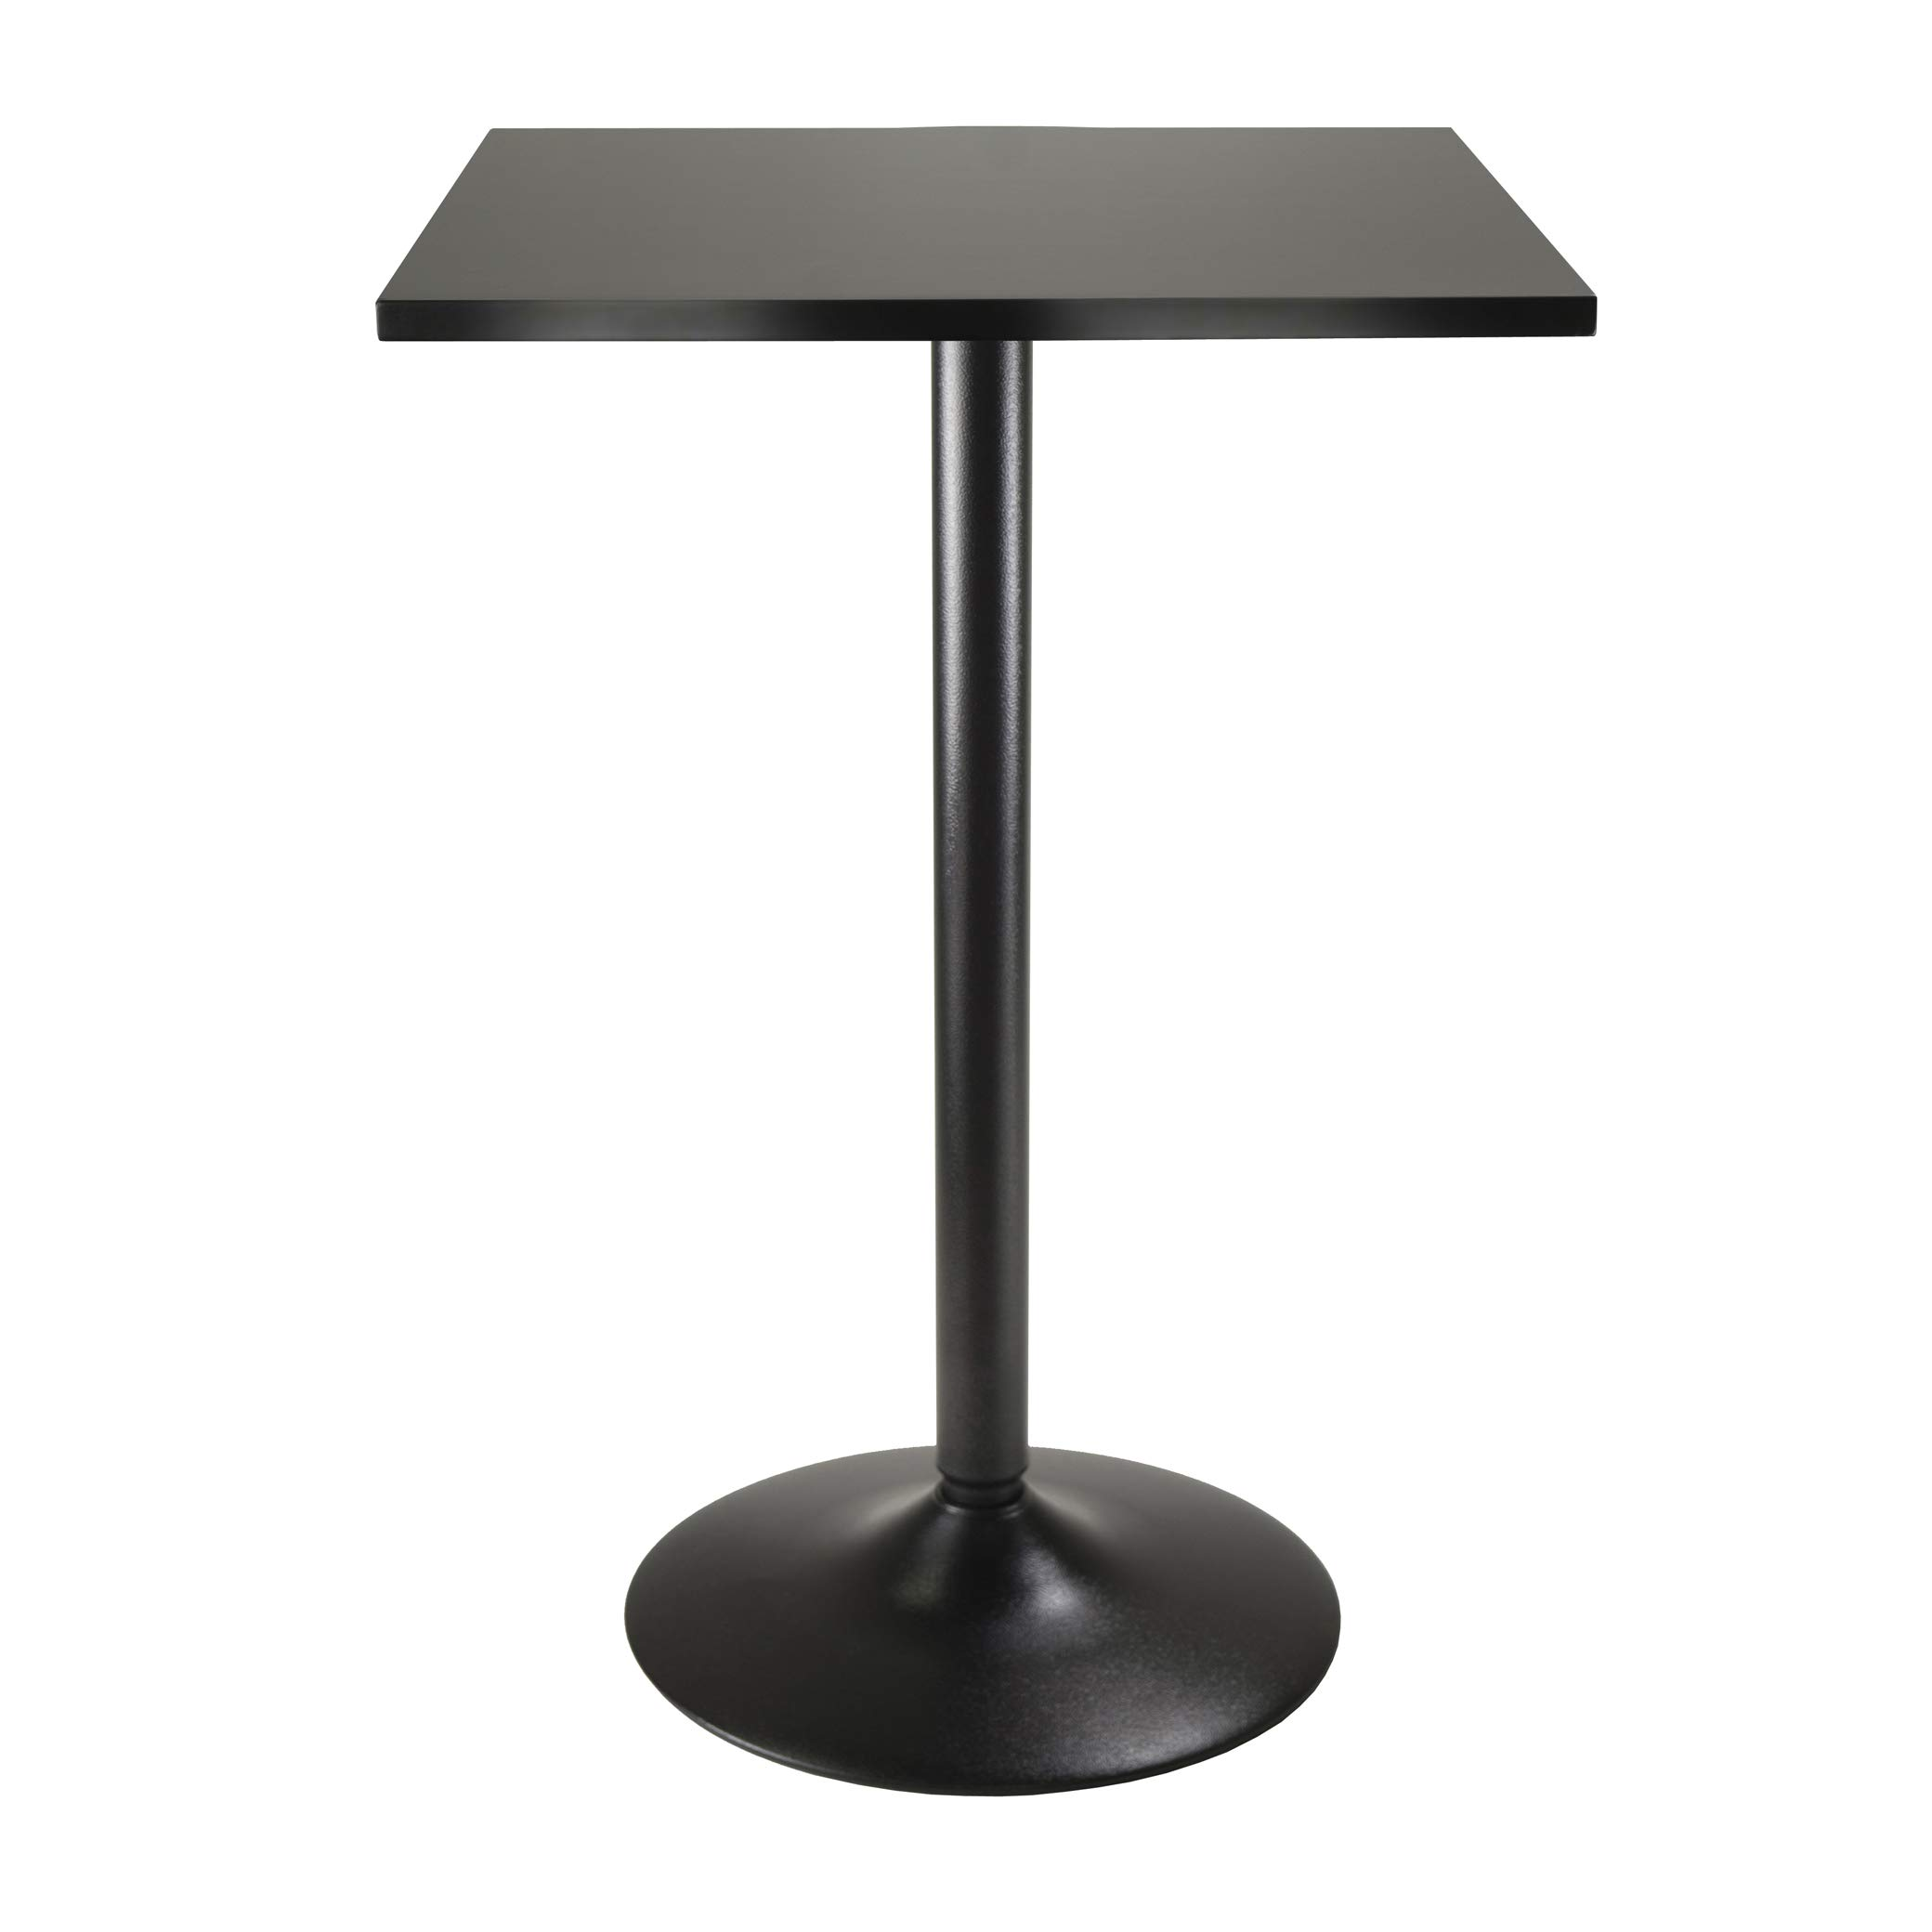 Winsome 20522 Obsidian Dining, Black by Winsome